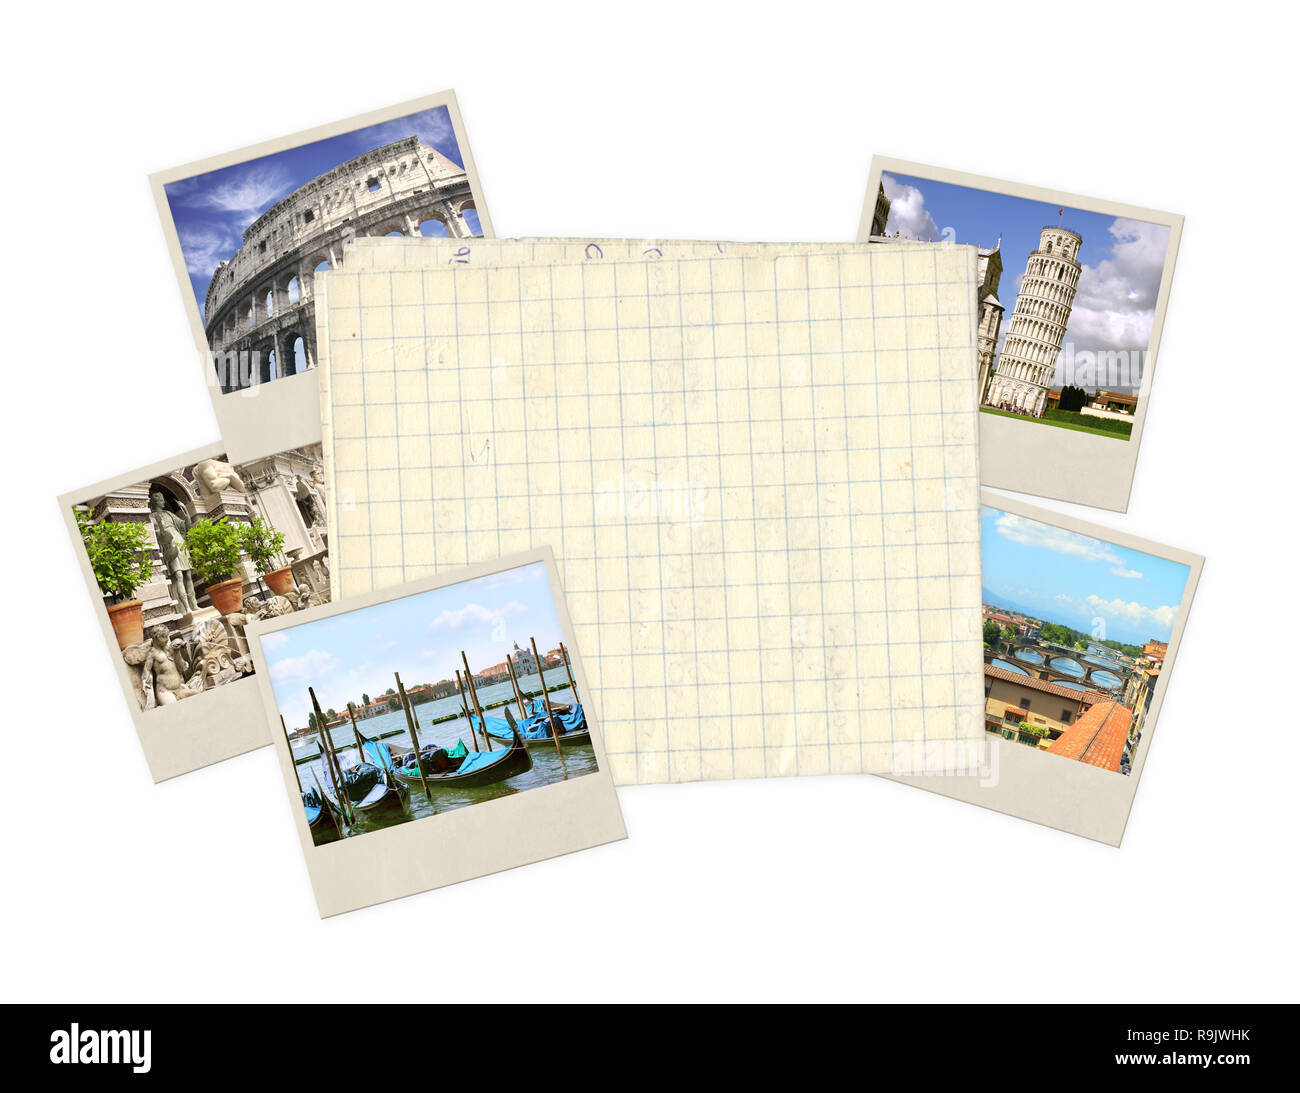 Memories of Italy. Old photos and paper - Stock Image